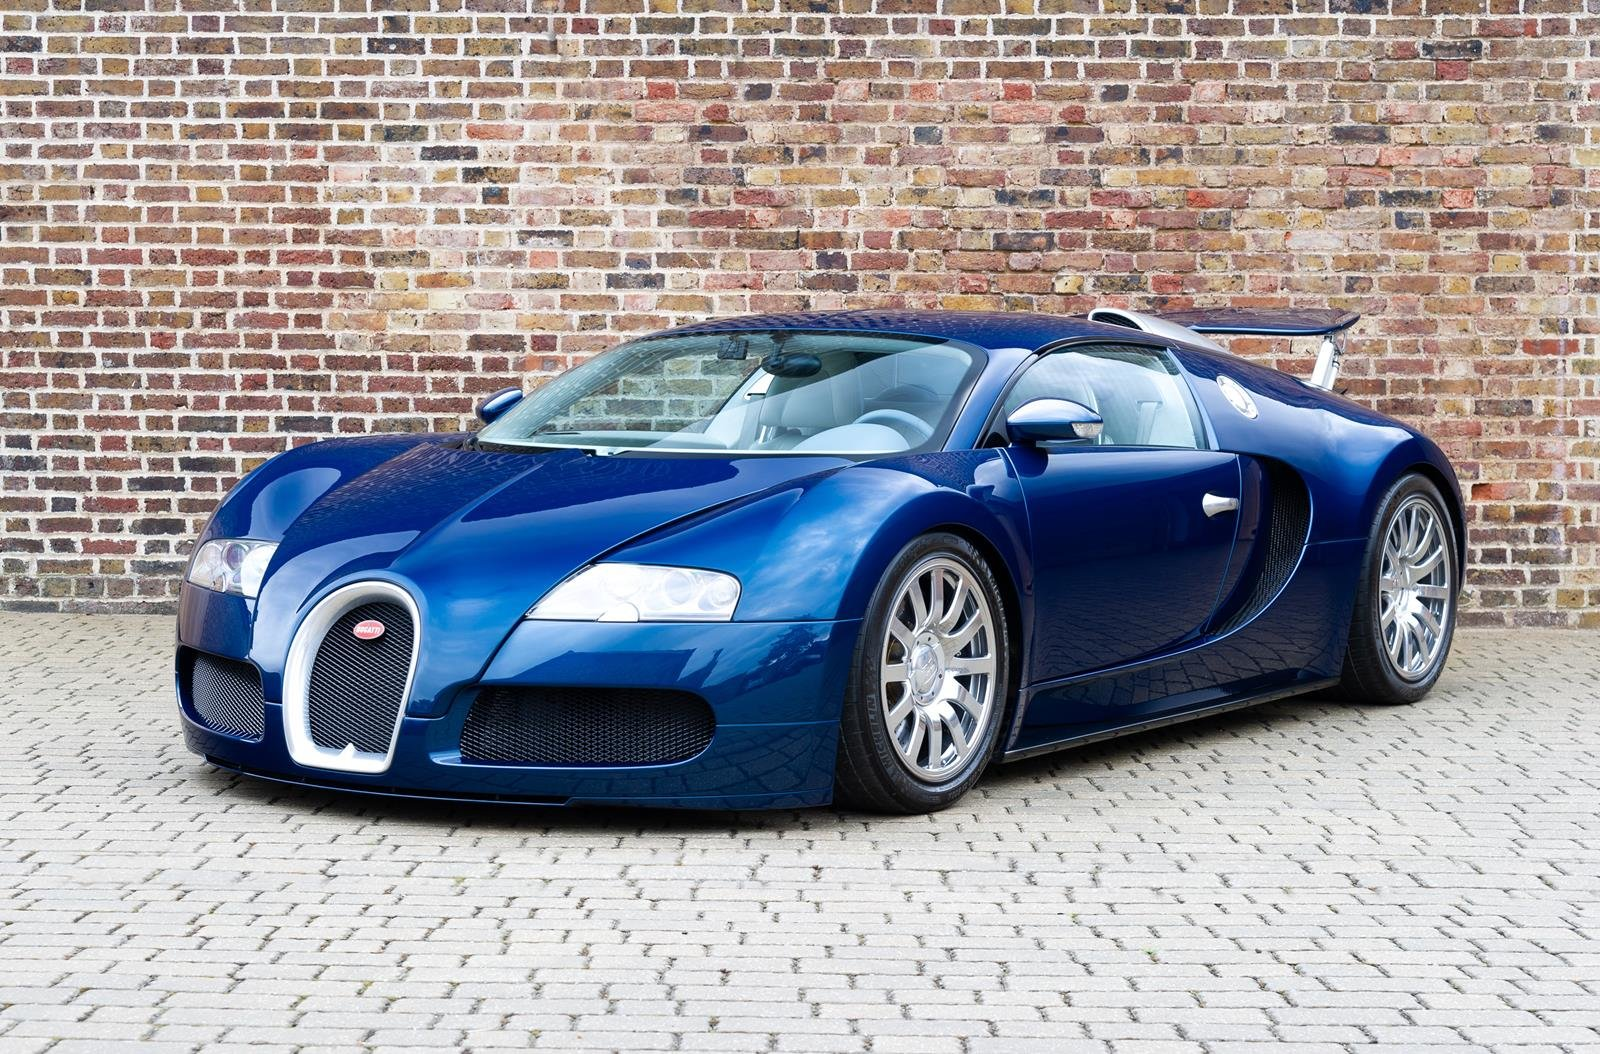 2008 Bugatti Veyron 16.4 -3 Year Bugatti Service Package Included For Sale (picture 1 of 6)